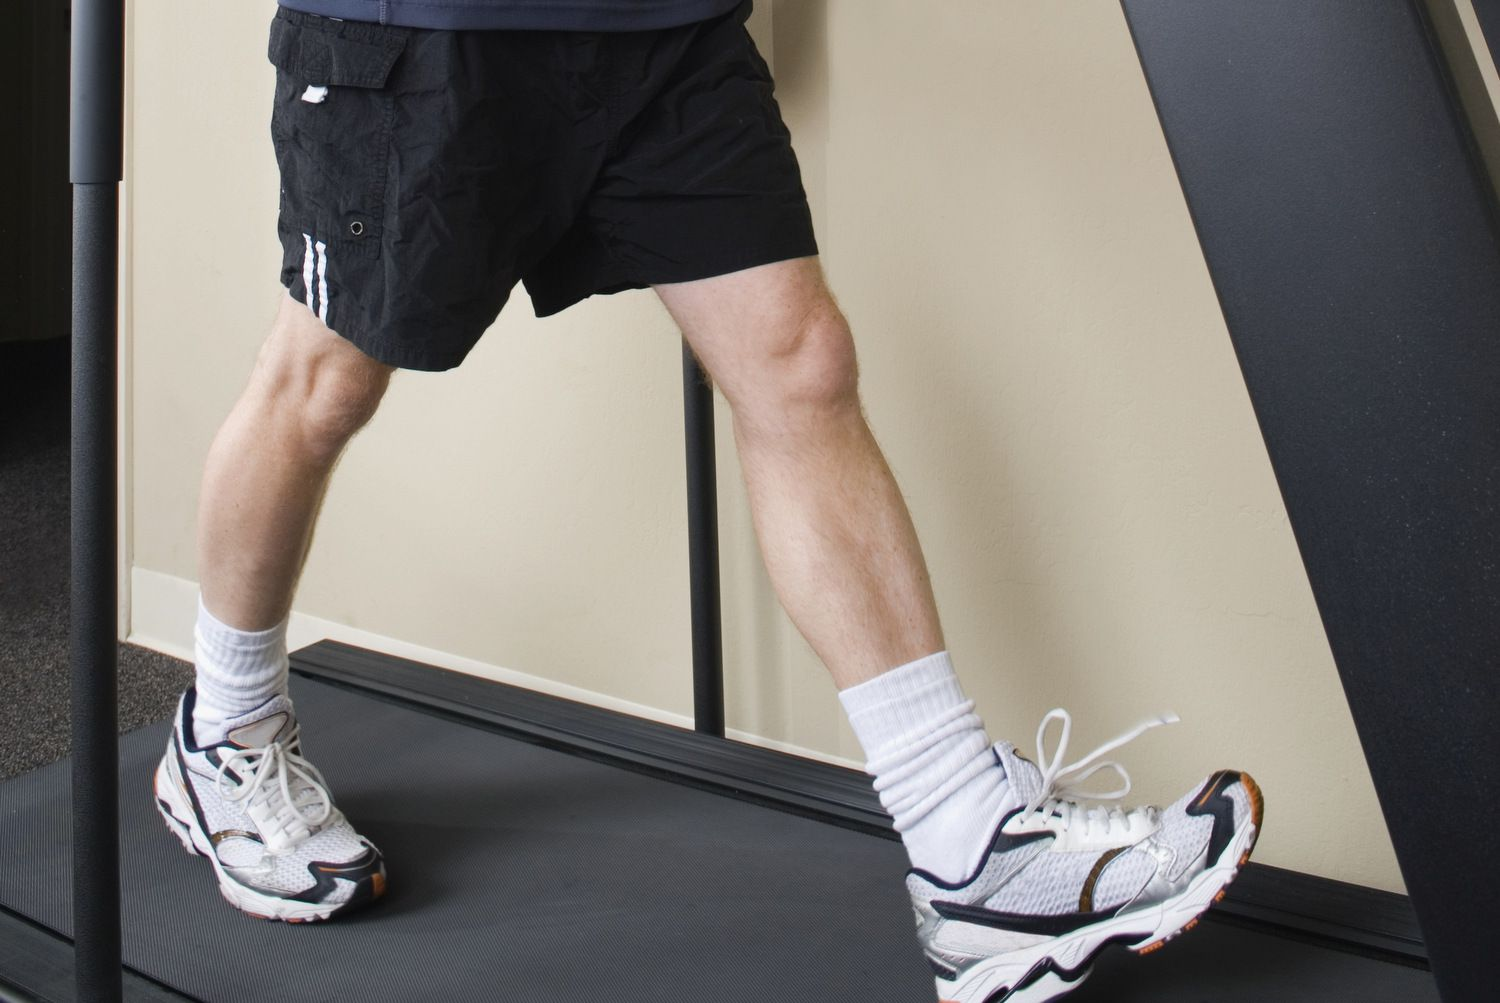 Overstriding on the Treadmill